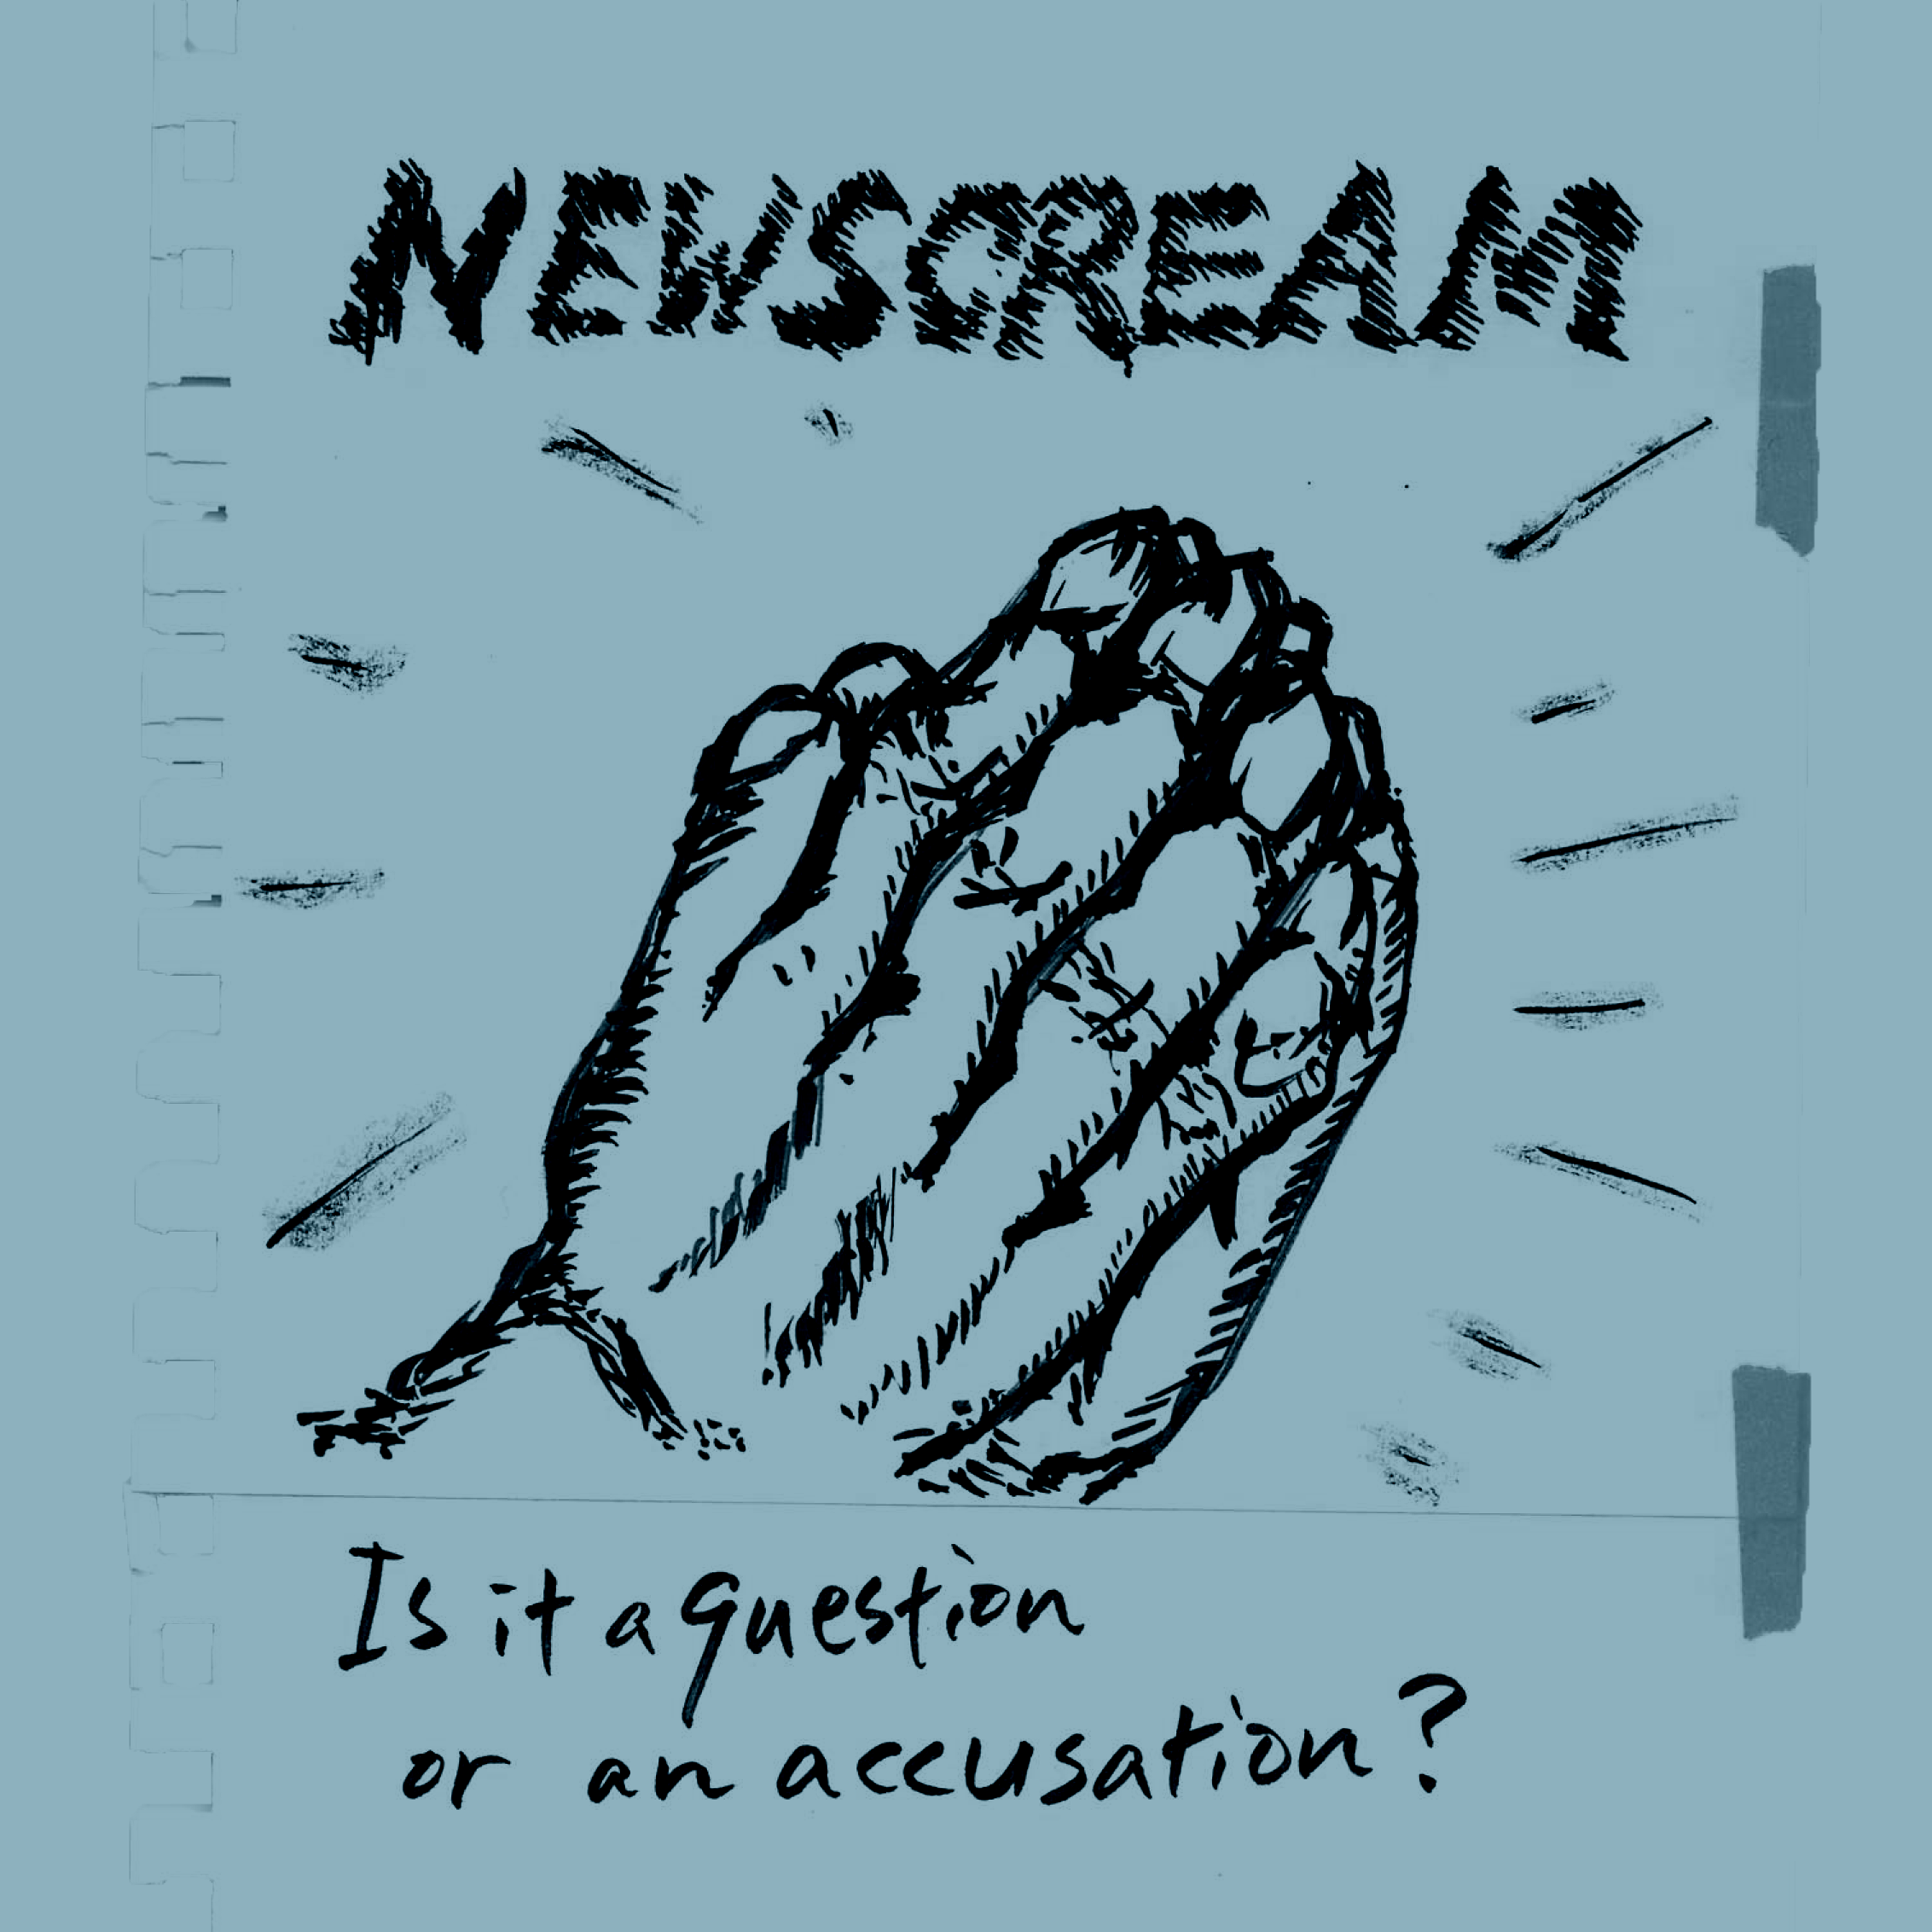 nsrm2021-2_Is-it-a-question-or-an-accusation_ジャケット_3000w